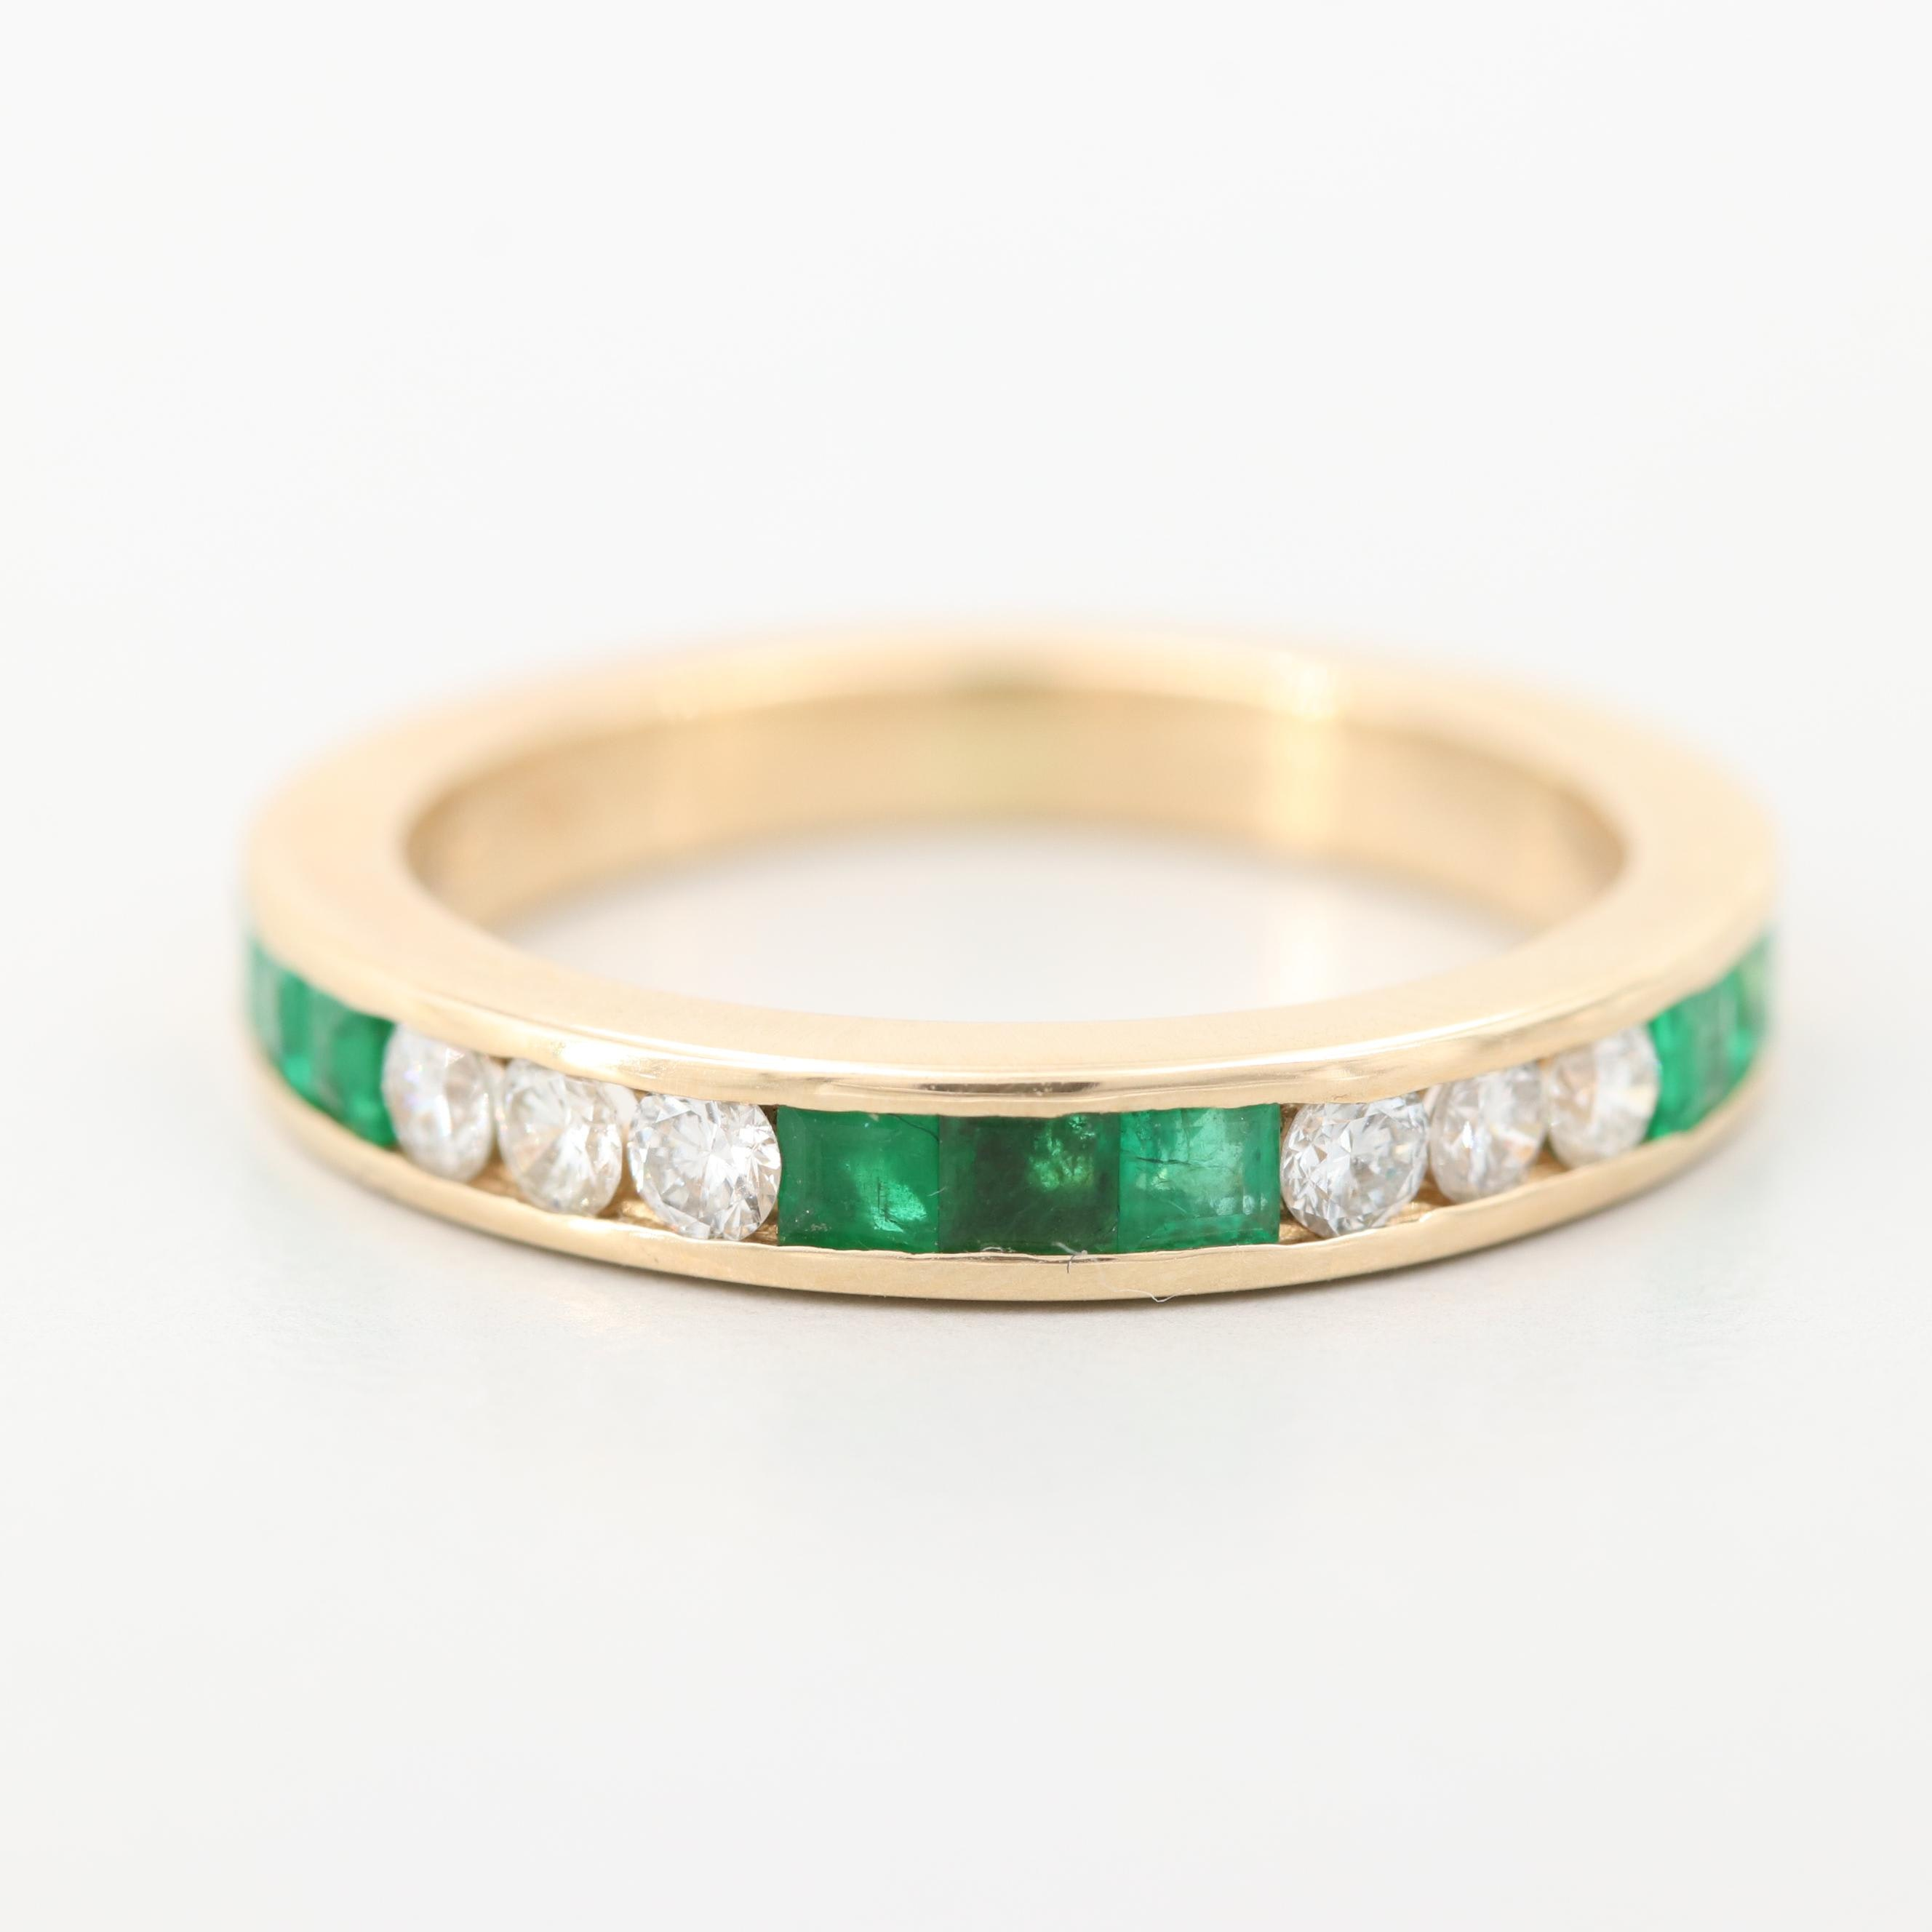 14K Yellow Gold Emerald and Diamond Ring in Channel Setting